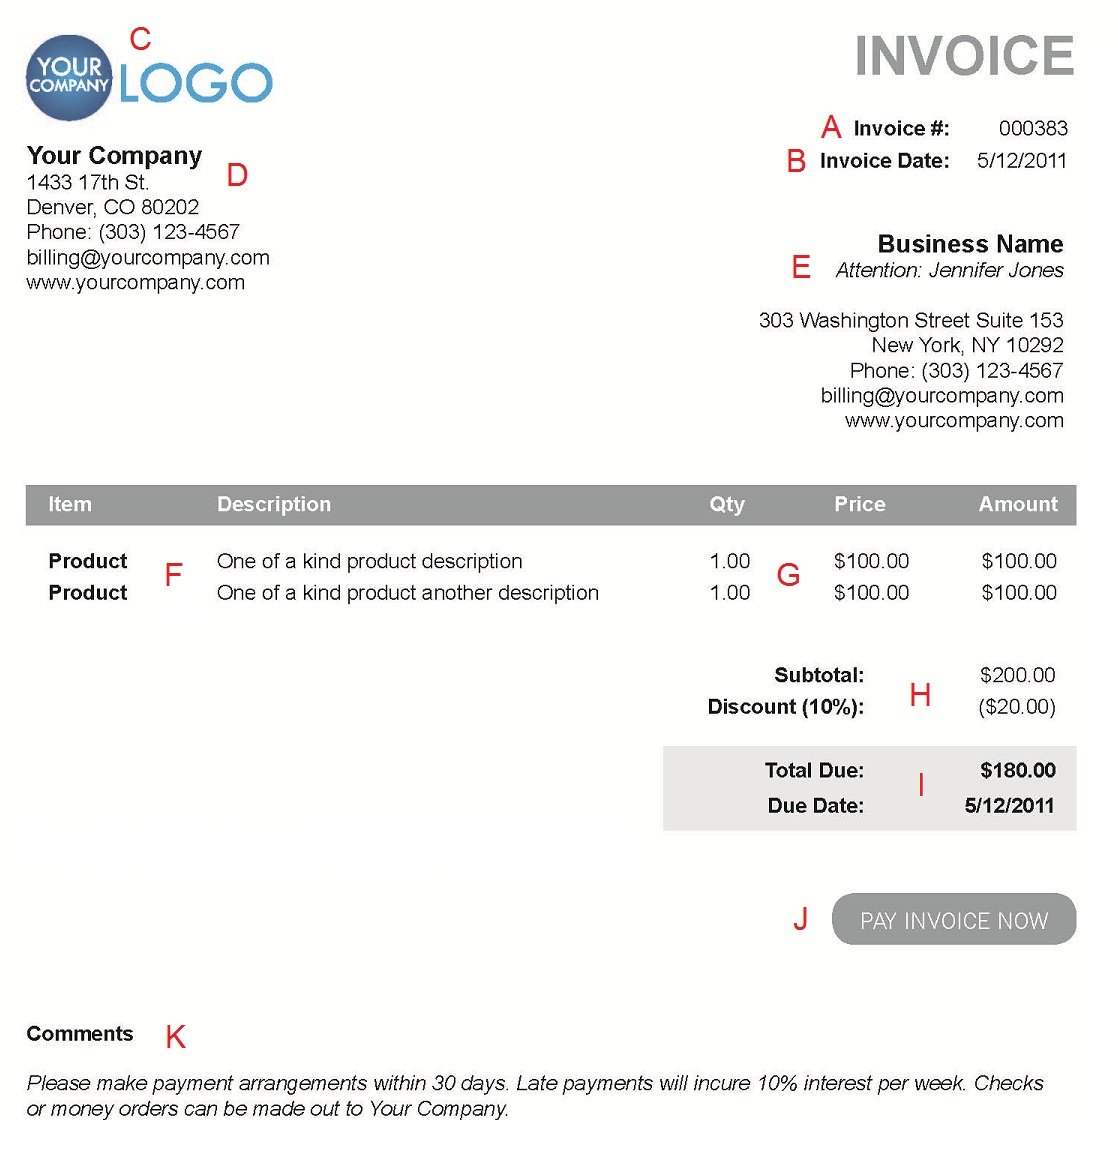 Ultrablogus  Gorgeous The  Different Sections Of An Electronic Payment Invoice With Fair A  With Astounding Handyman Invoice Sample Also Sample Personal Invoice In Addition How Do I Pay An Invoice On Paypal And Spanish Word For Invoice As Well As Whats A Proforma Invoice Additionally Template Of Invoice In Word From Paysimplecom With Ultrablogus  Fair The  Different Sections Of An Electronic Payment Invoice With Astounding A  And Gorgeous Handyman Invoice Sample Also Sample Personal Invoice In Addition How Do I Pay An Invoice On Paypal From Paysimplecom